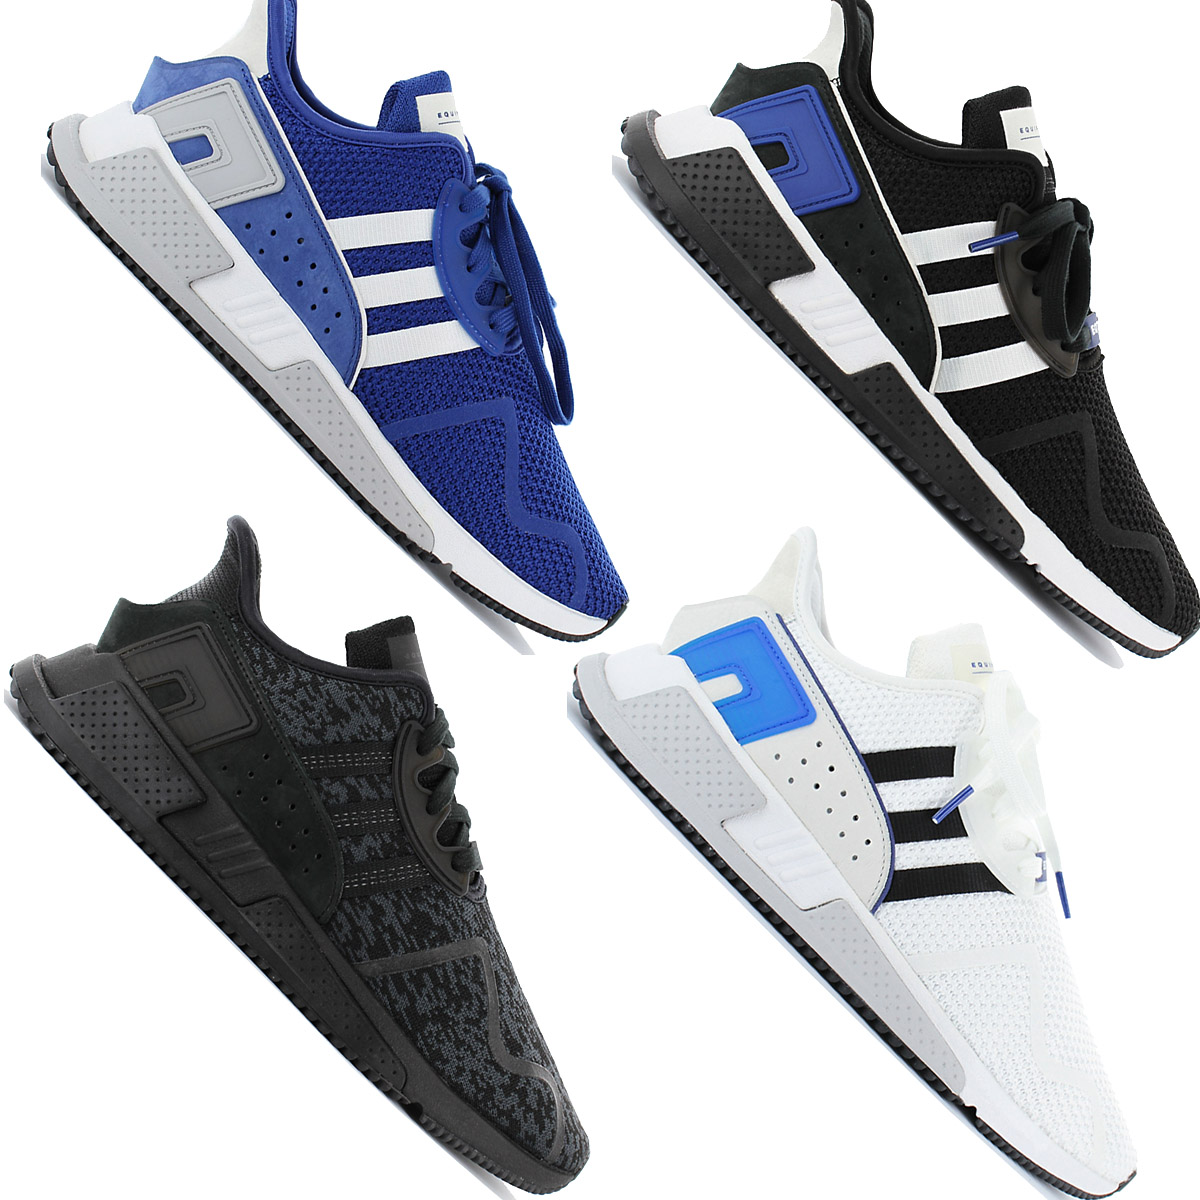 buy online a0cea 70ef9 Details about Adidas Originals Eqt Equipment Cushion Adv Mens Sneakers  Shoes Leisure New